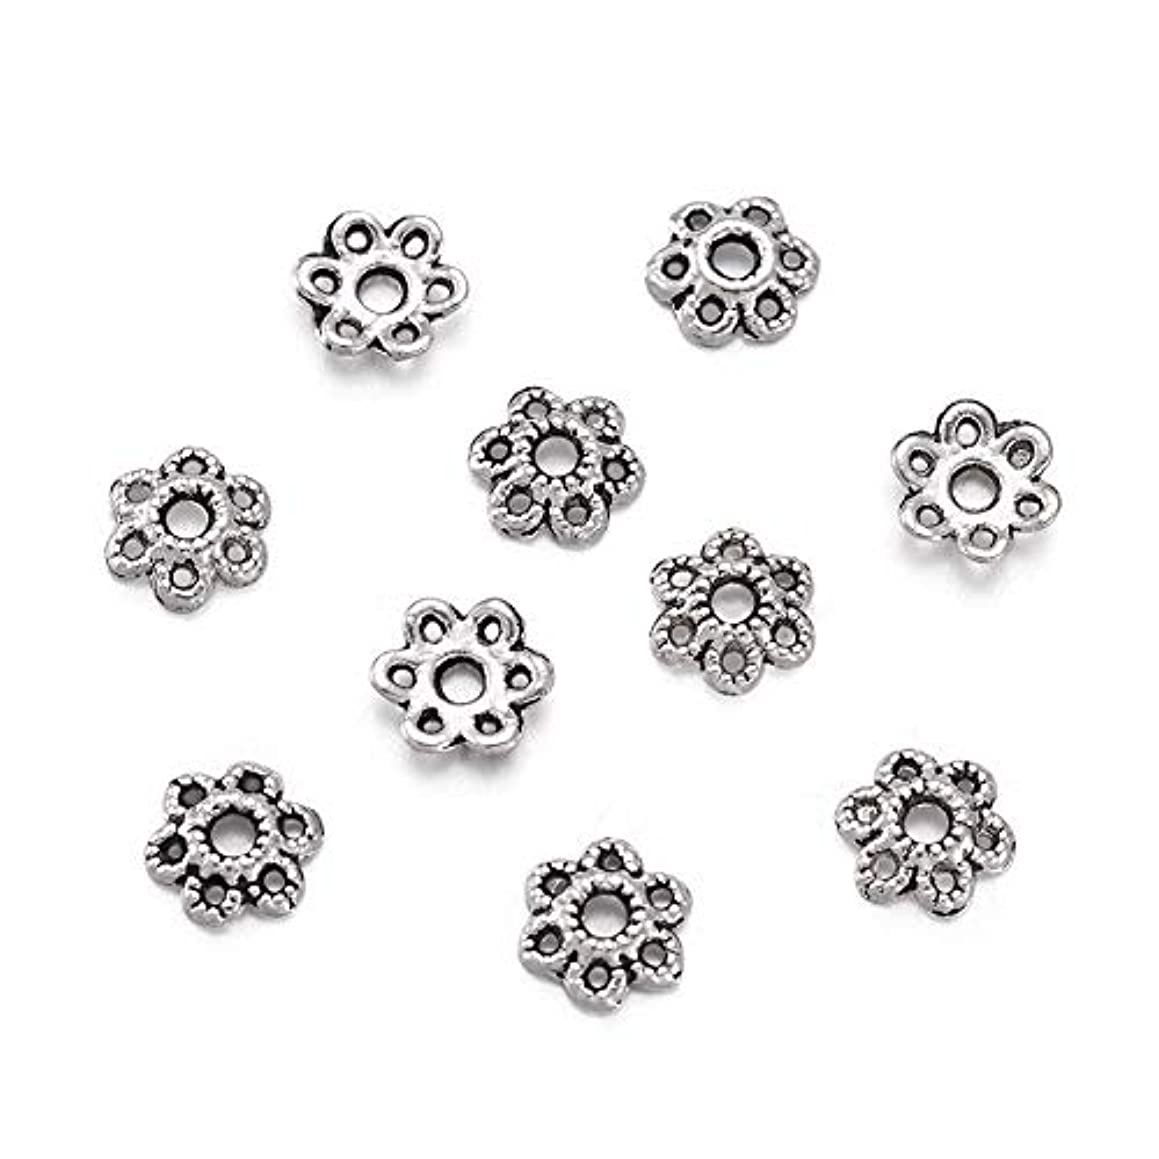 Craftdady 100PCS 6mm Tibetan Antique Silver 6-Petal Hollow Flower Bali STYL Metal Silver Bead Caps Metal Spacers for Jewelry Making Supplies, Nickel Free